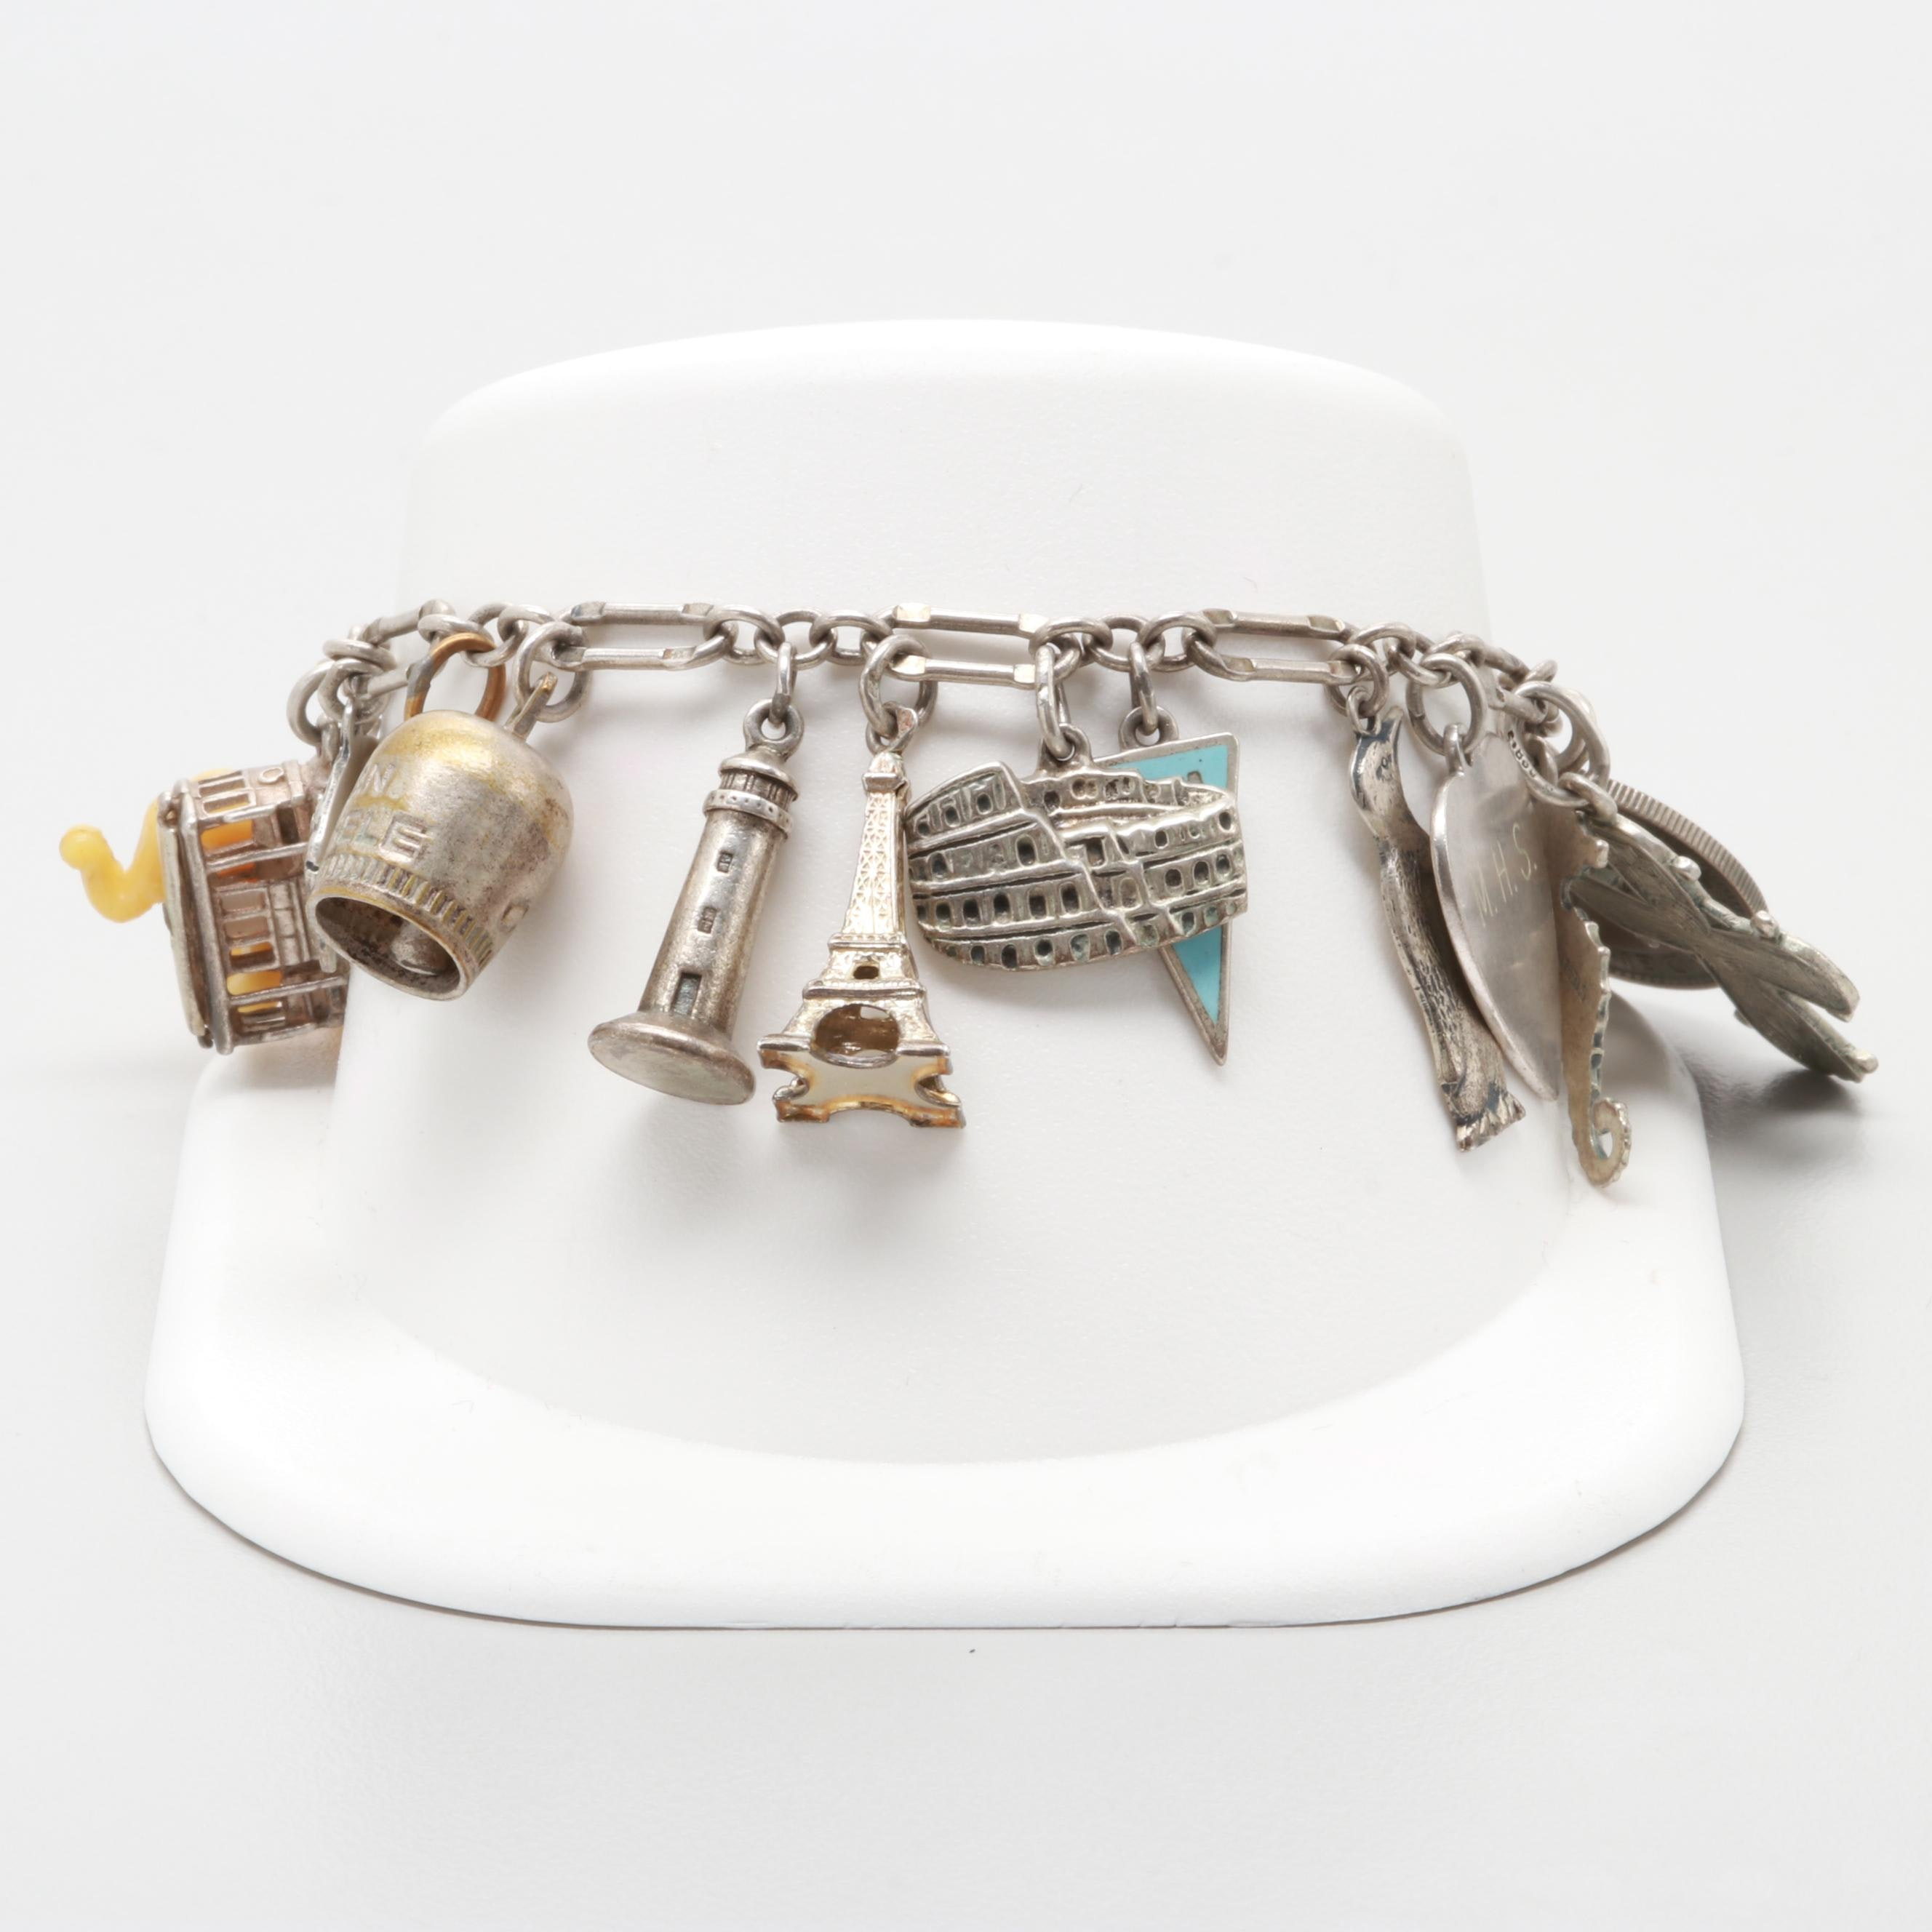 Vintage Sterling Silver Charm Bracelet with Plastic and Turquoise Accents